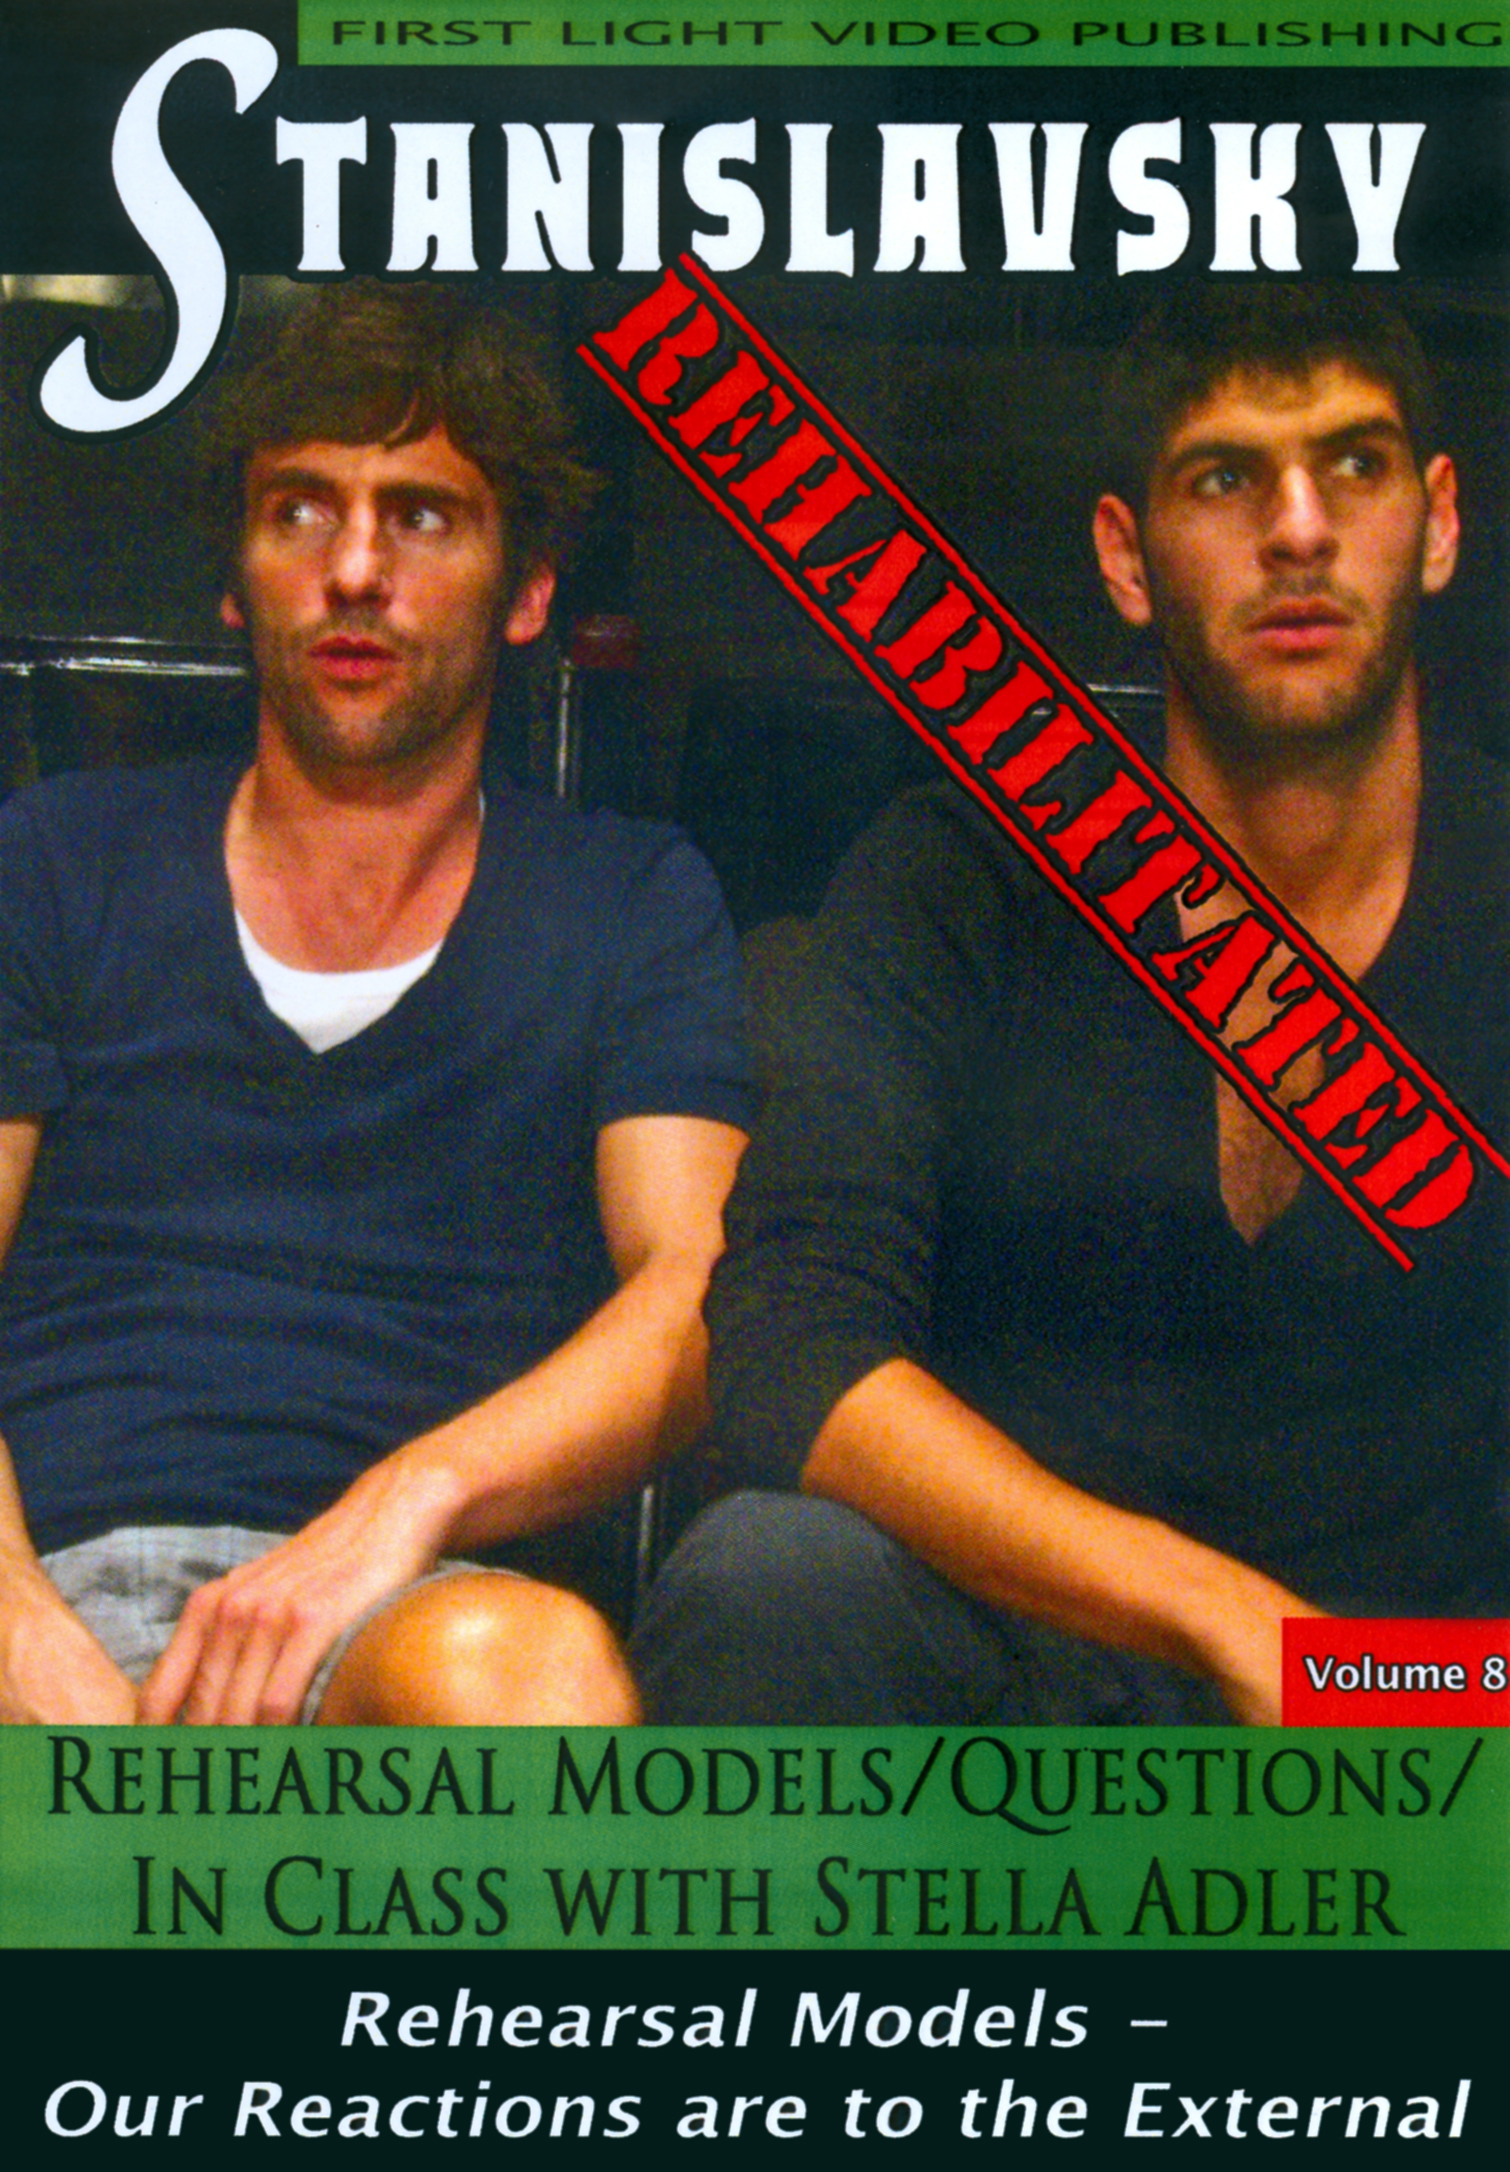 Rehearsal Models/Questions/In Class with Stella Adler